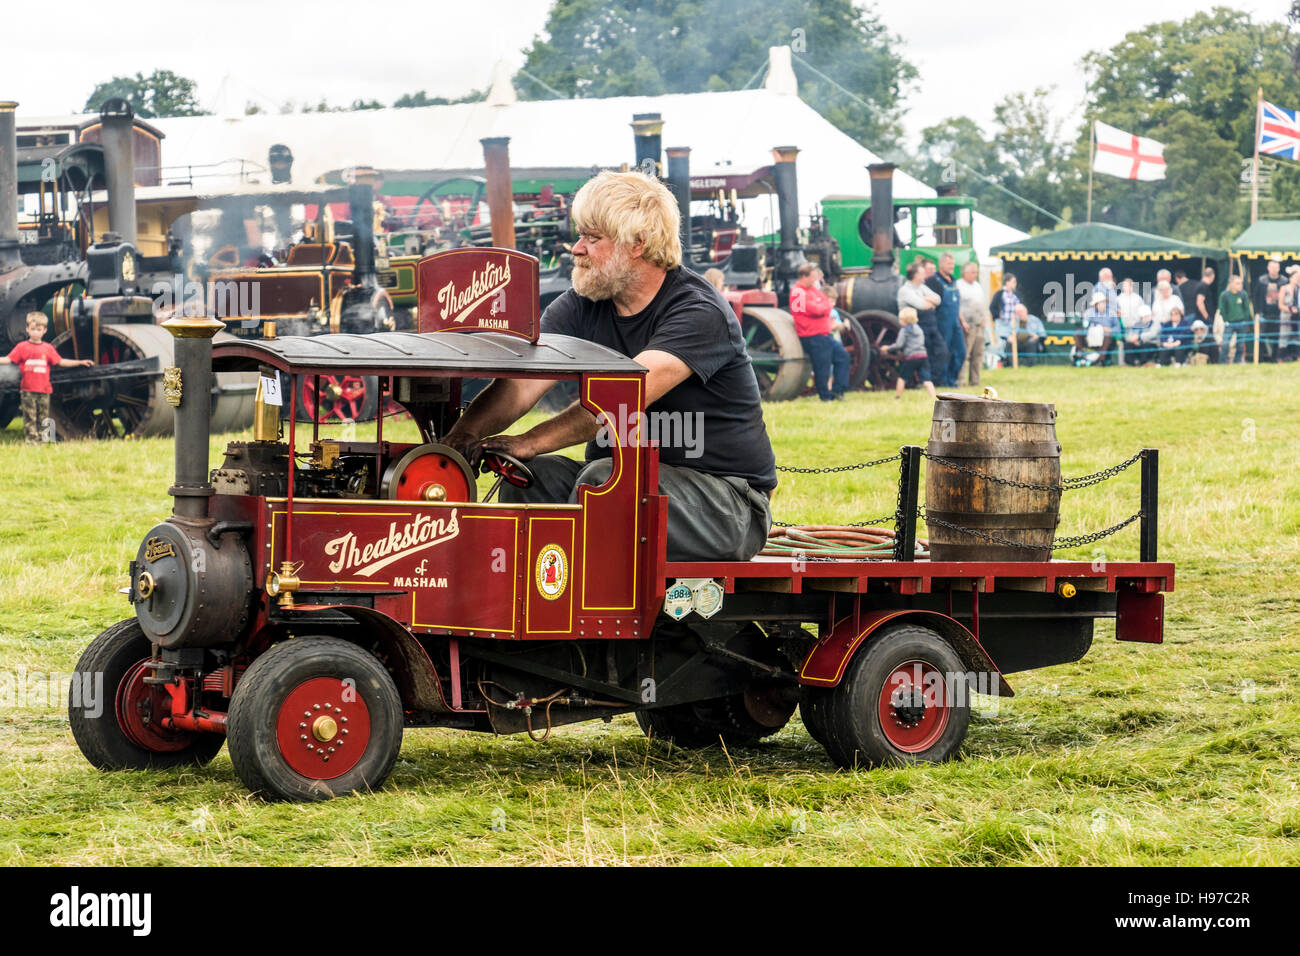 Miniature steam truck being driven and displayed at Astle Park Traction Engine Rally 2016 at Chelford Cheshire England - Stock Image